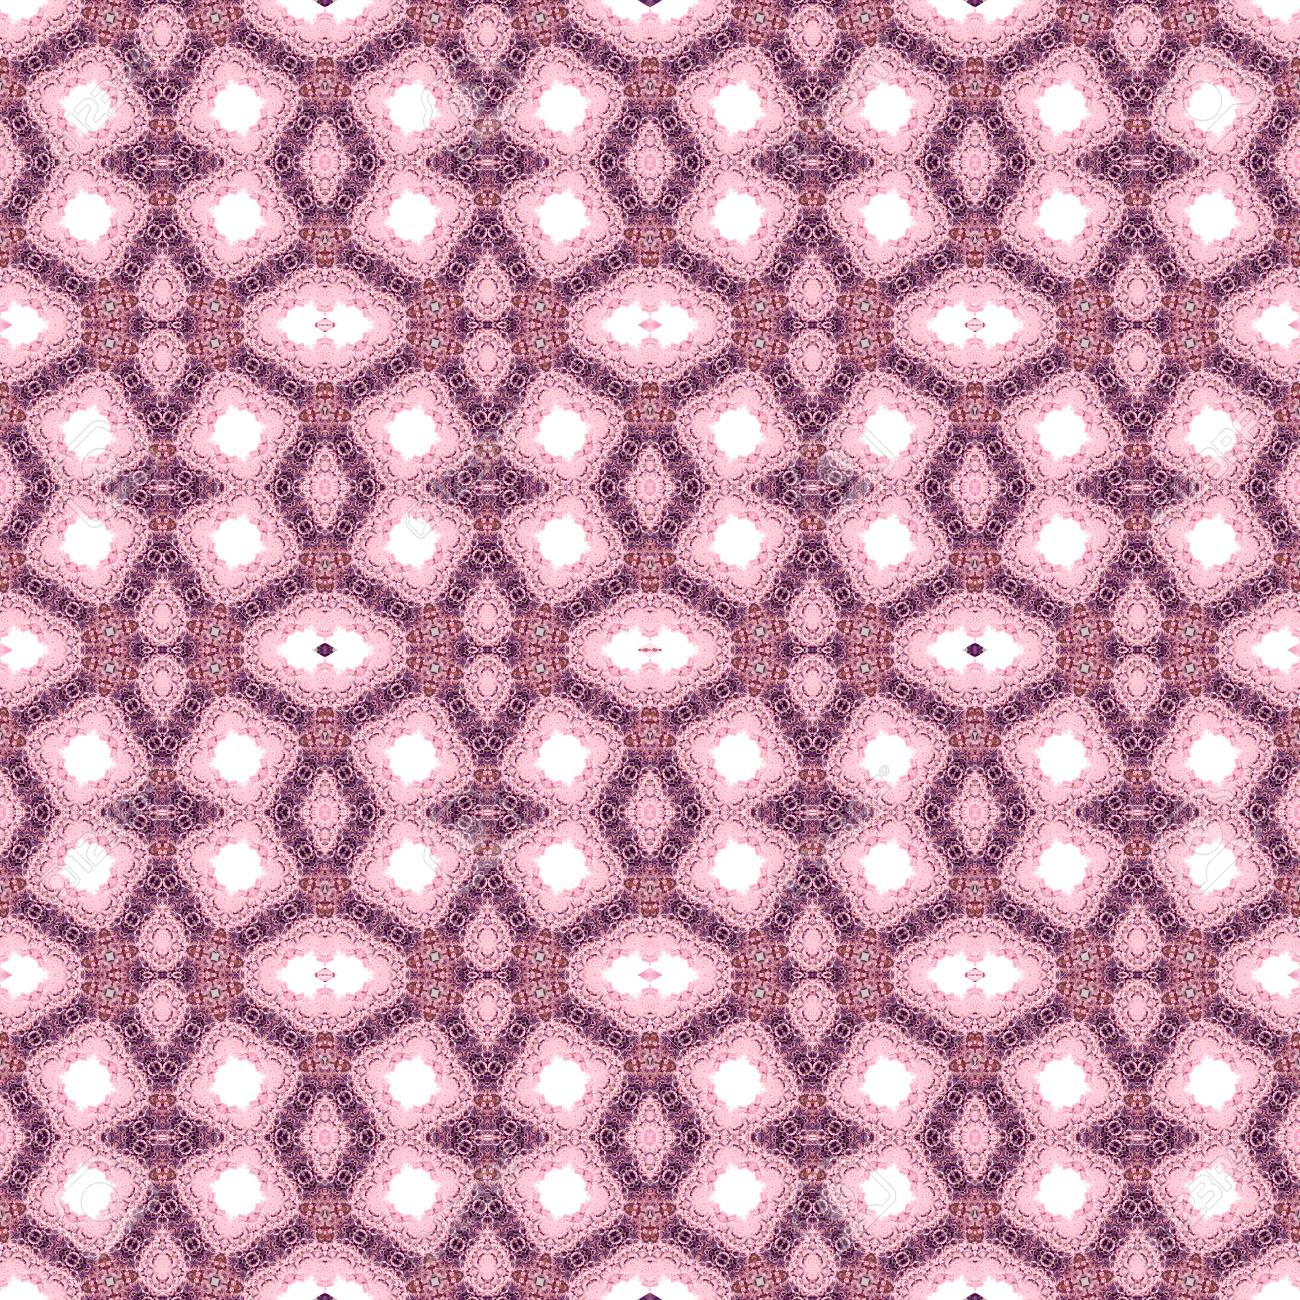 Abstract flowers seamless pattern background. Kaleidoscope from flowers. Hydraulic tile design. - 104074827